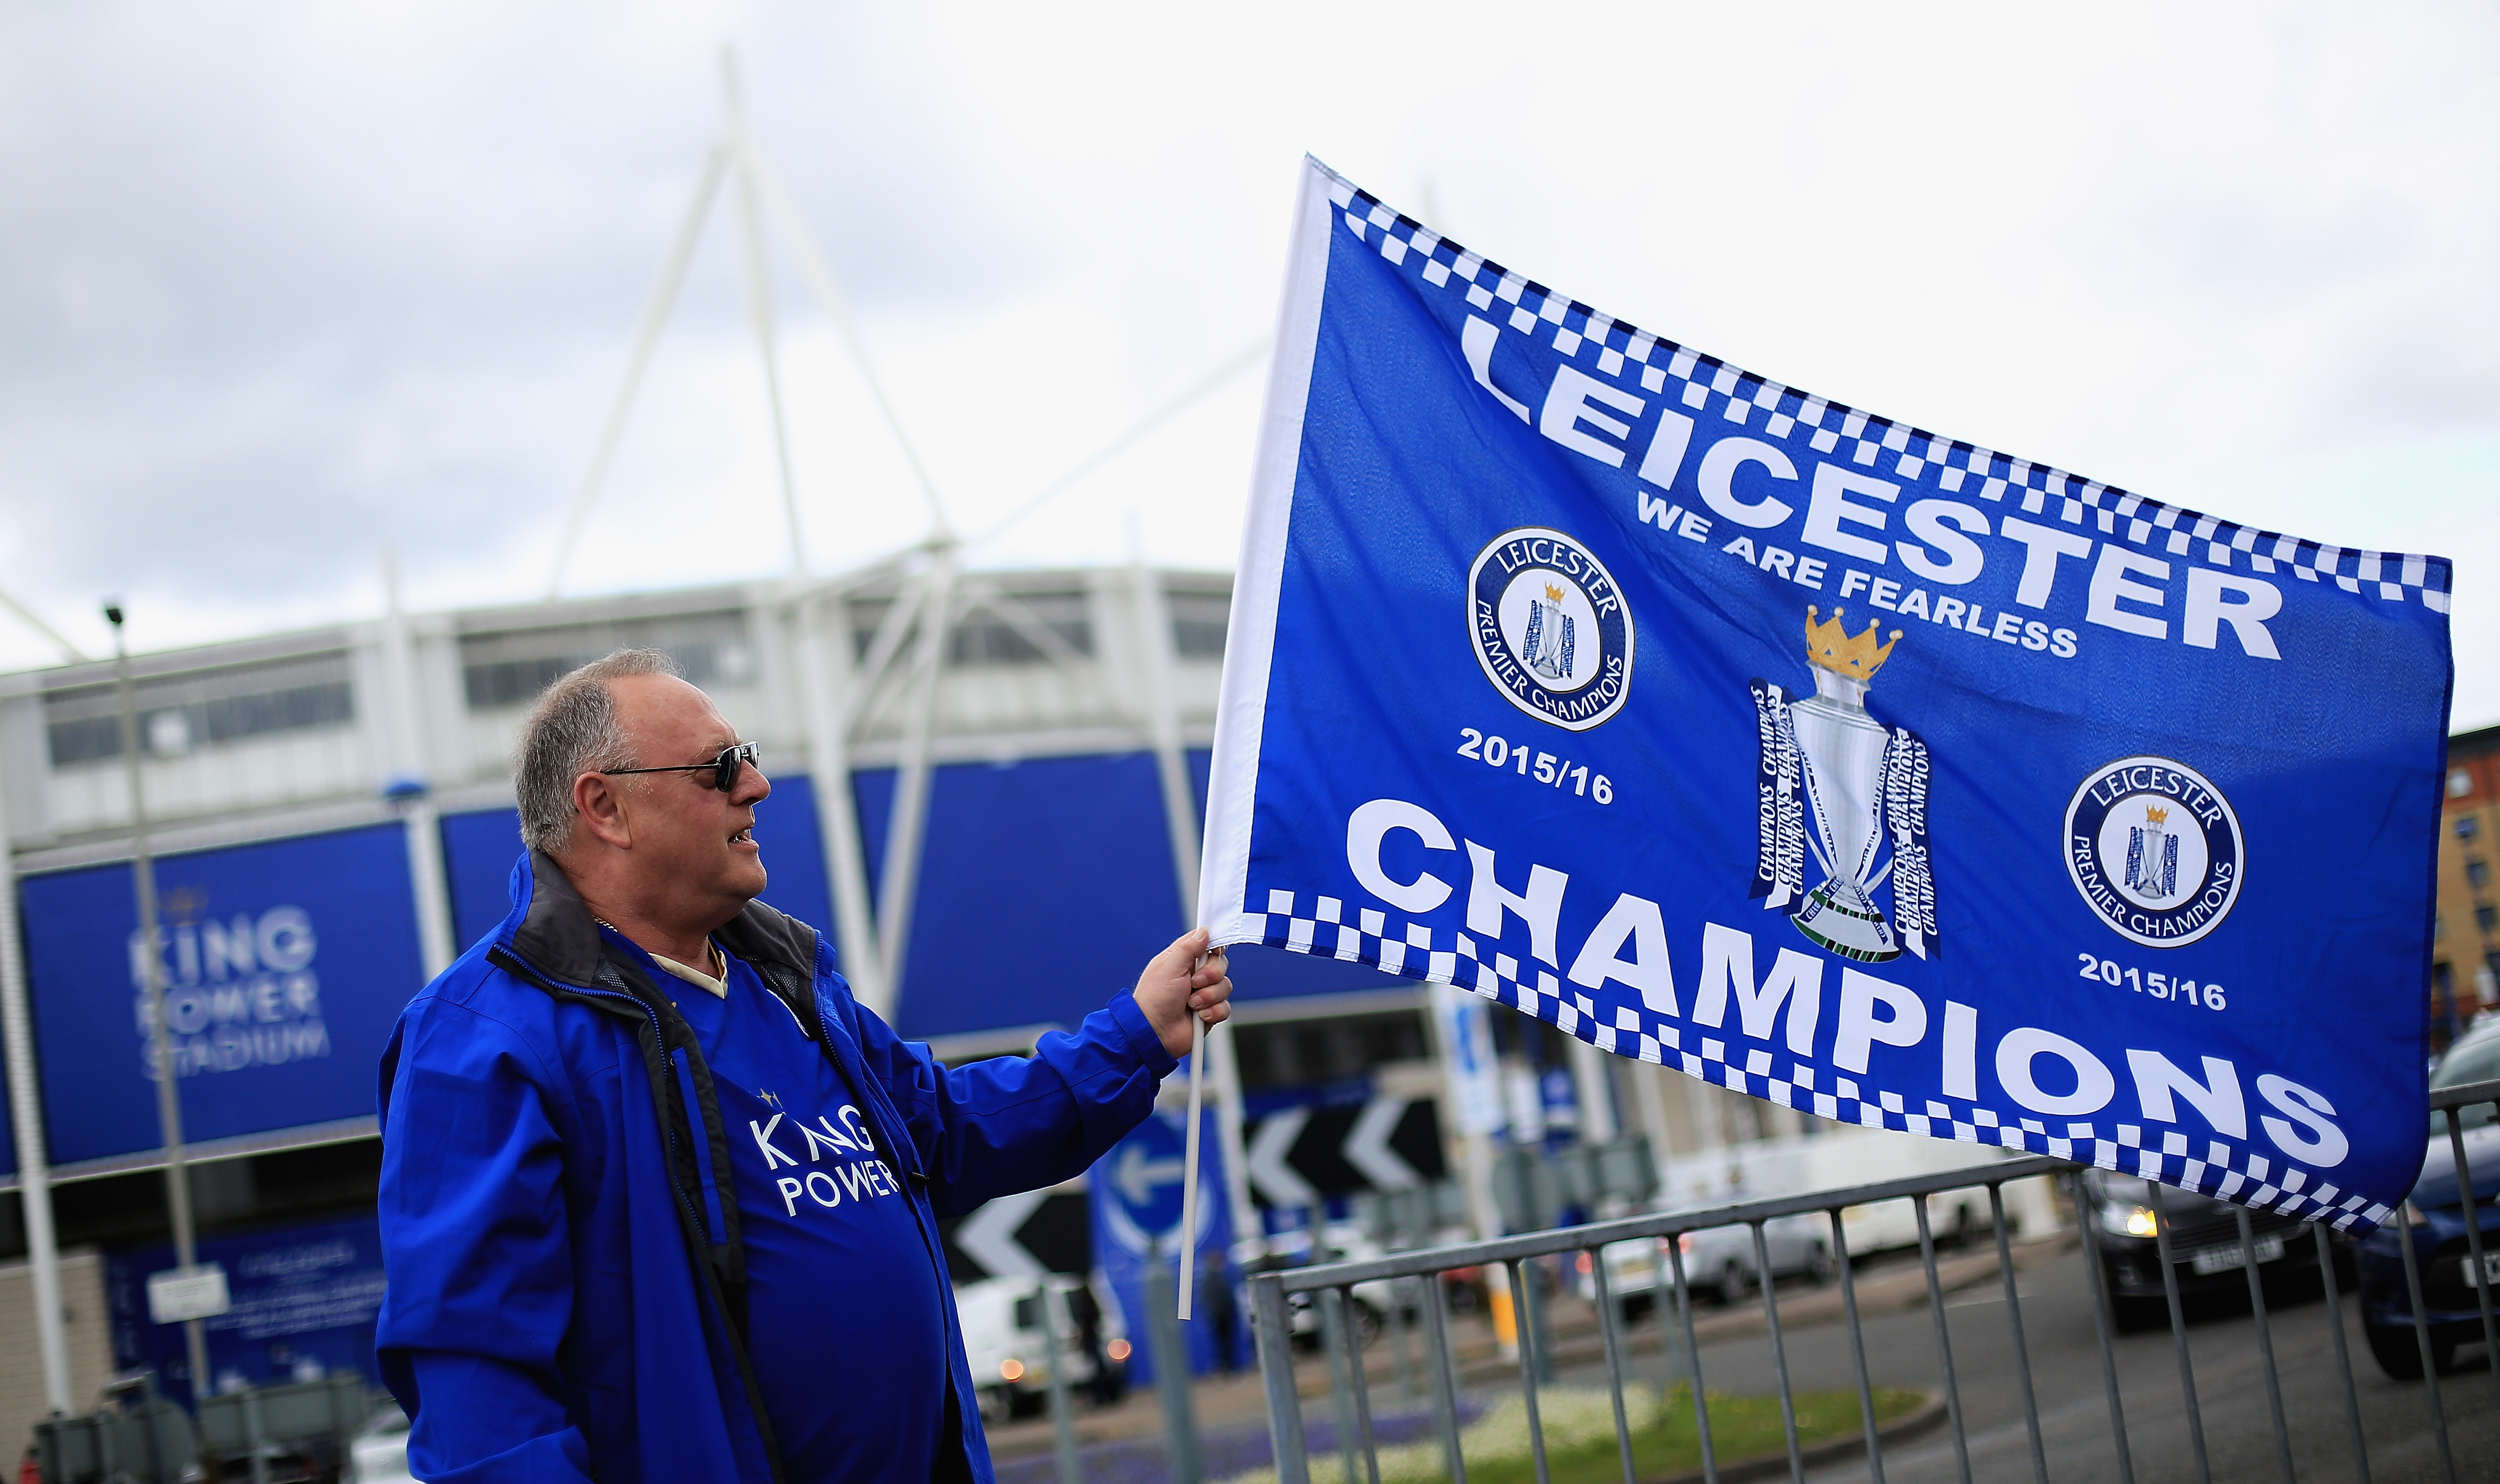 leicester fans, leicester pizza, leicester free beer, leicester fans, leicester stadium, leicester everton, leicester vs everton